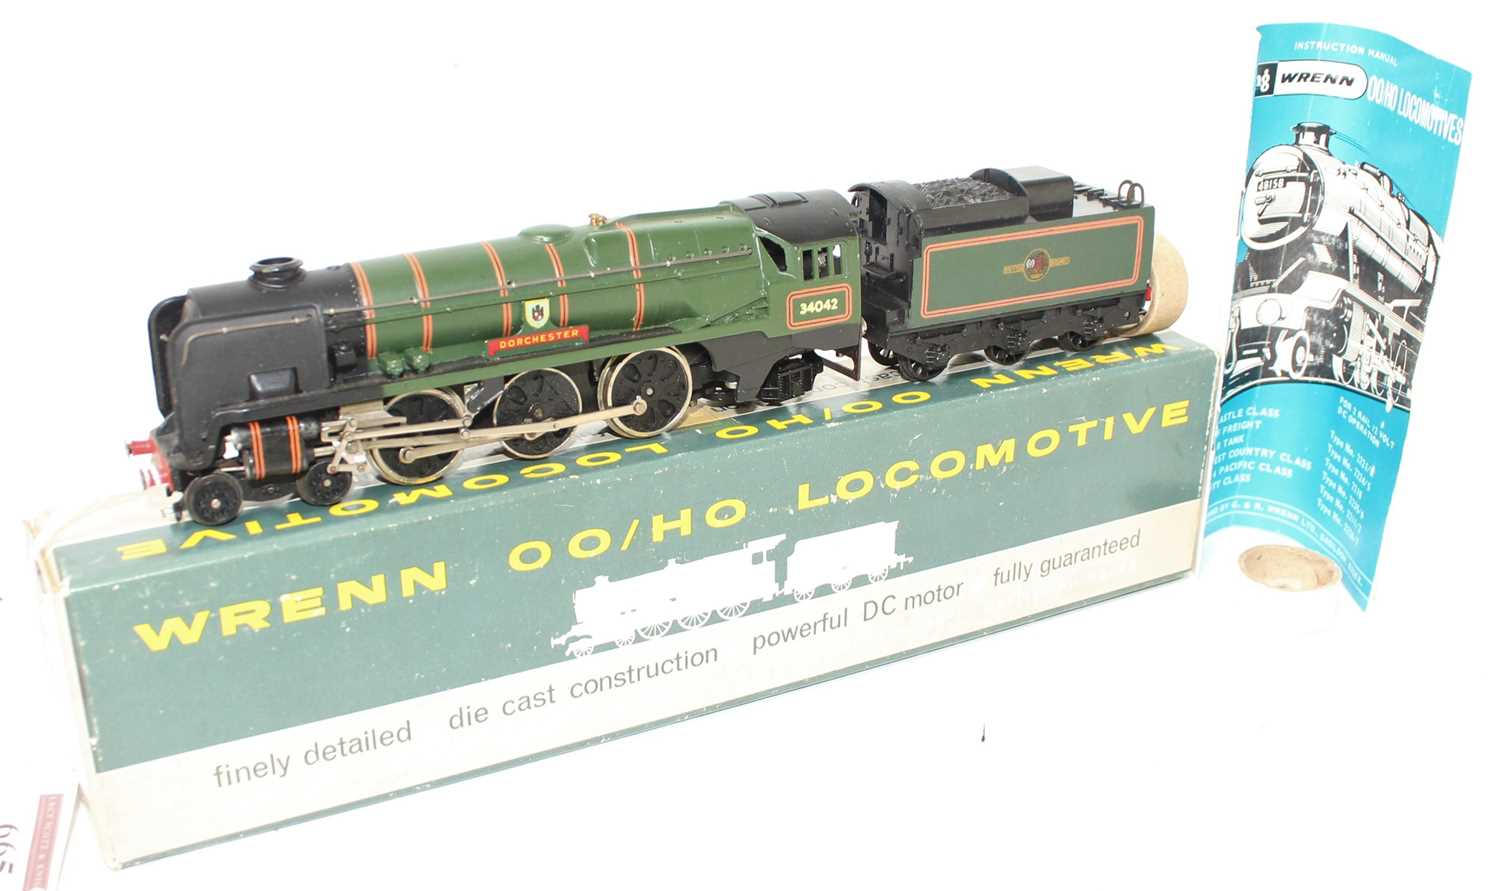 A Wrenn Railways No. W2236 re-built West Country Class engine and tender, Dorchester, finished in BR